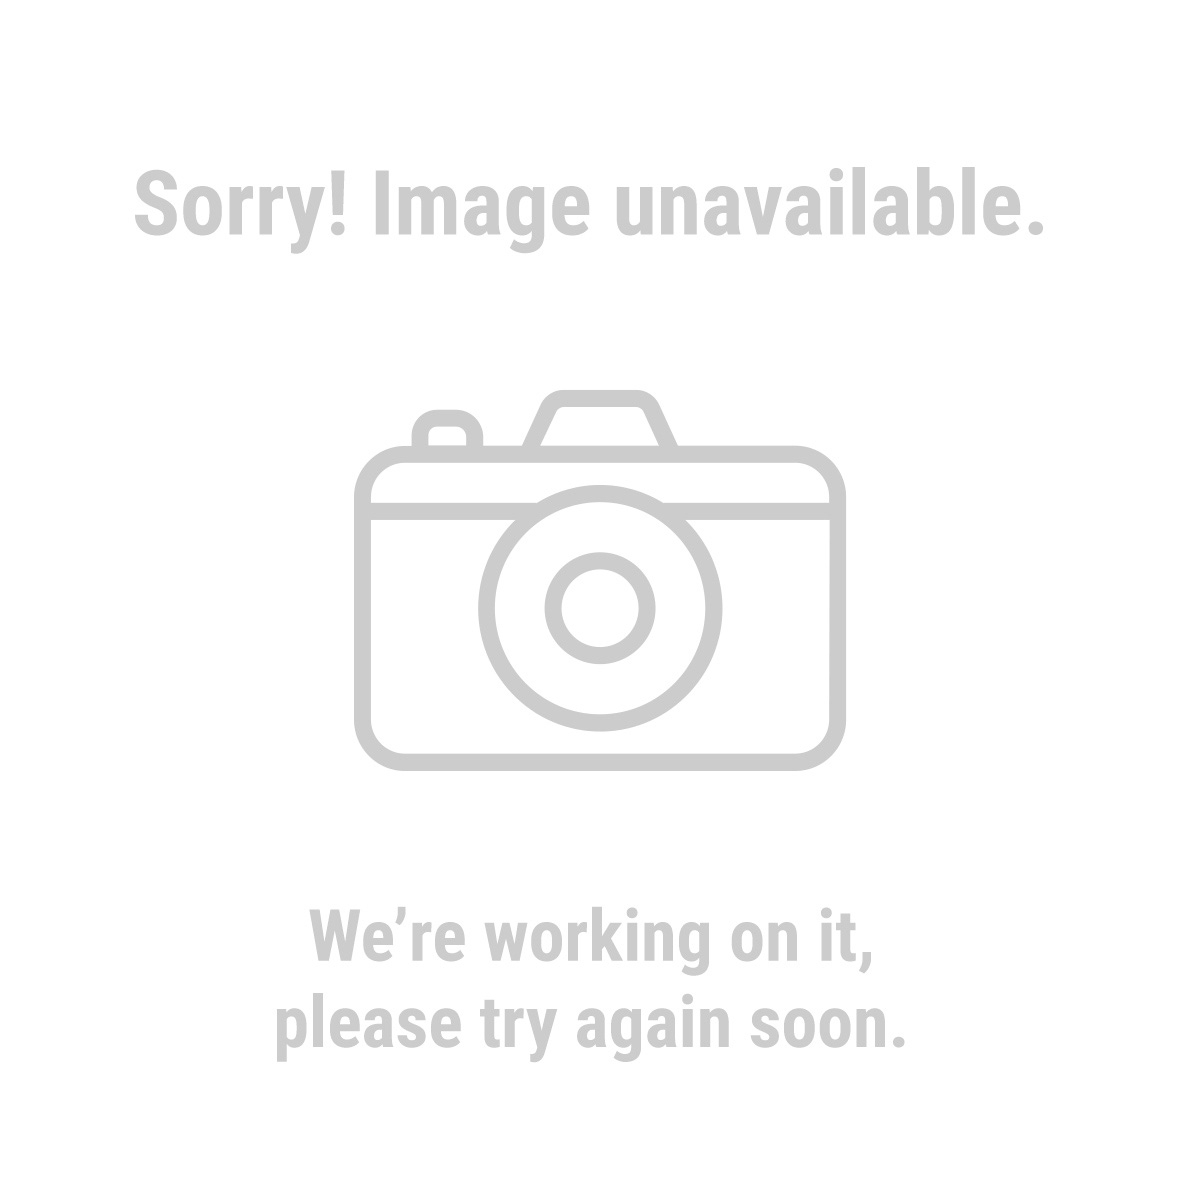 Drill Master 61389 2 Horsepower 14 in. Industrial Cut-Off Saw